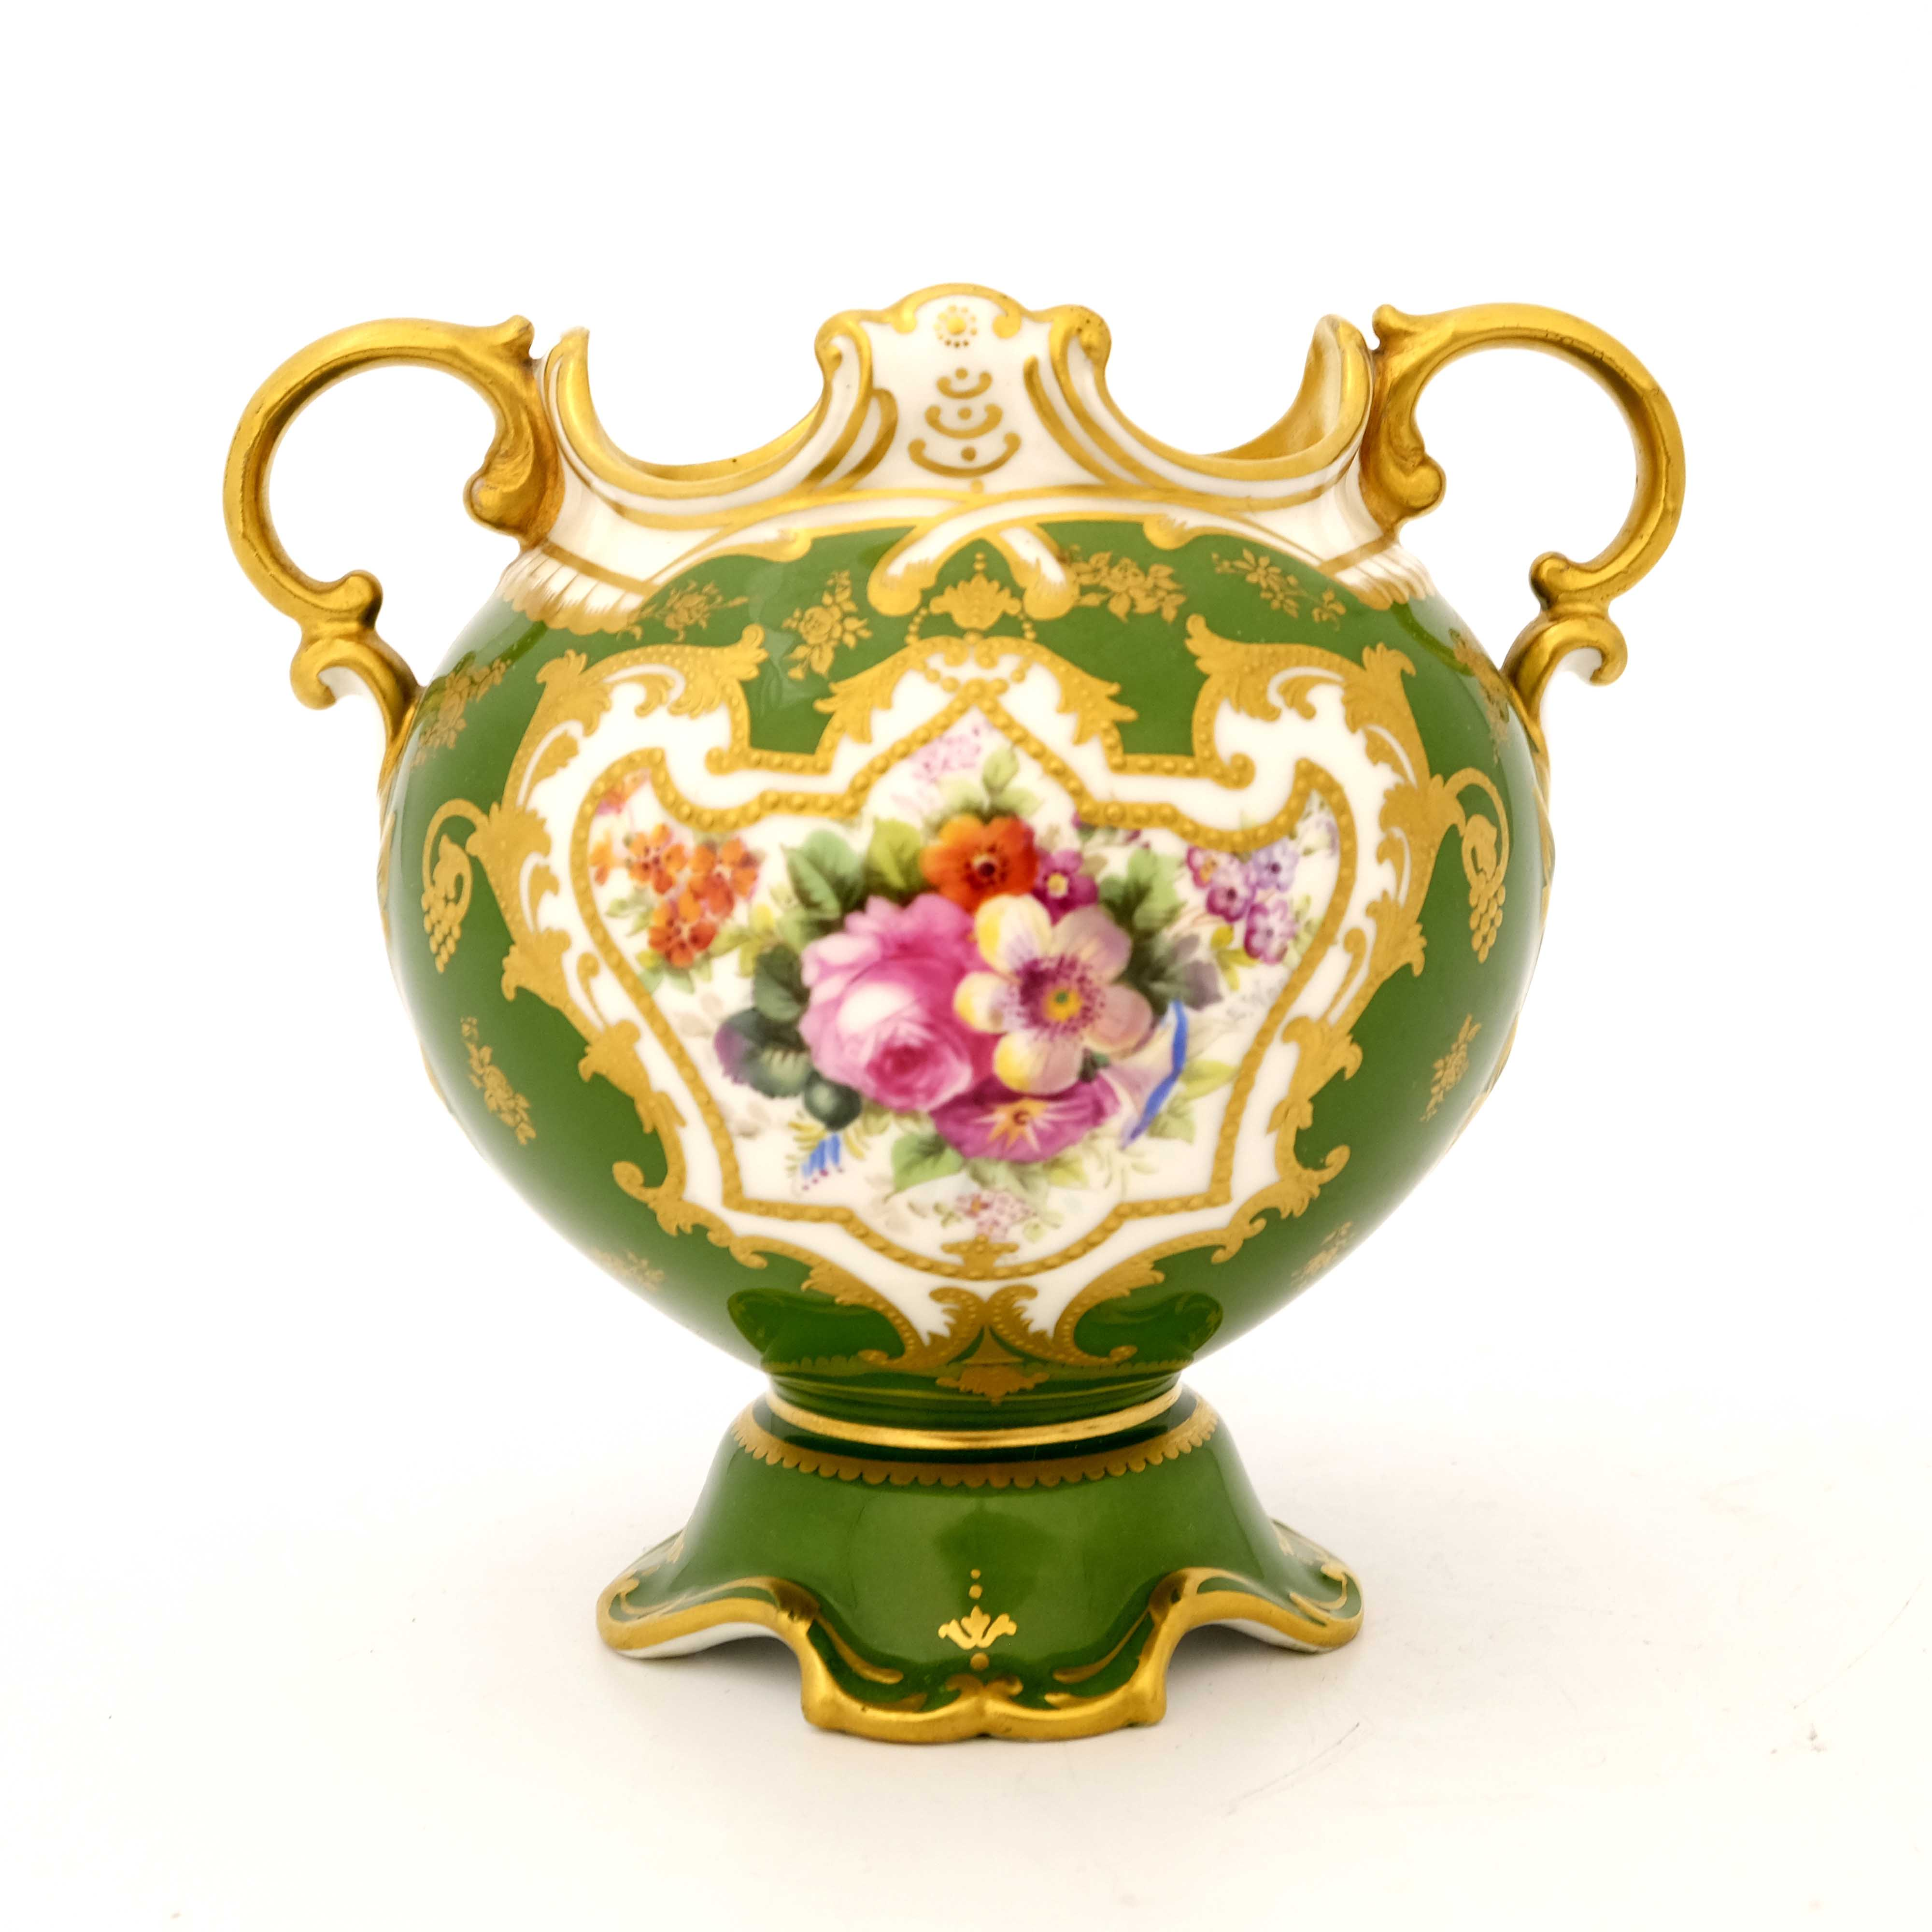 Edwin Wood for Royal Doulton, a floral painted twin handled vase